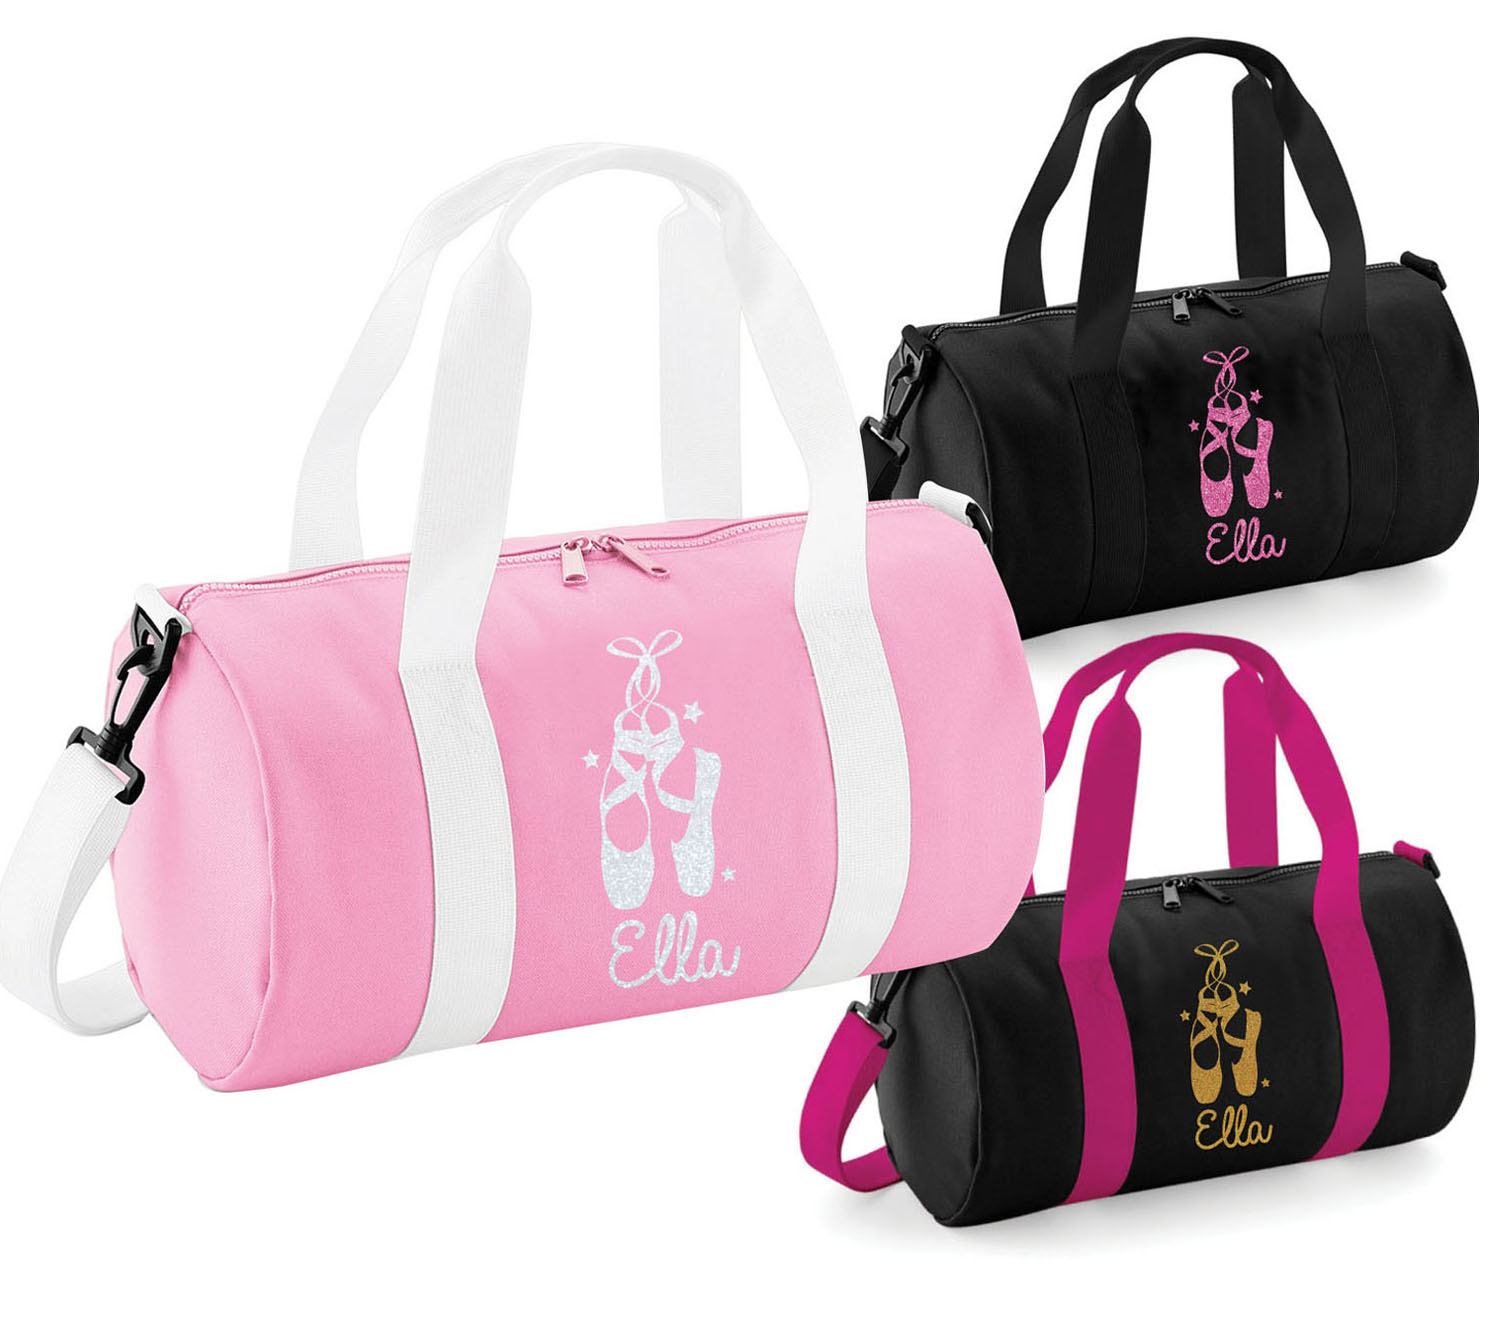 Clothes, Shoes & Accessories Children's Dancewear Personalised Ballet Bag with Glitter Print      Gymnastics Dance & Gym Bags